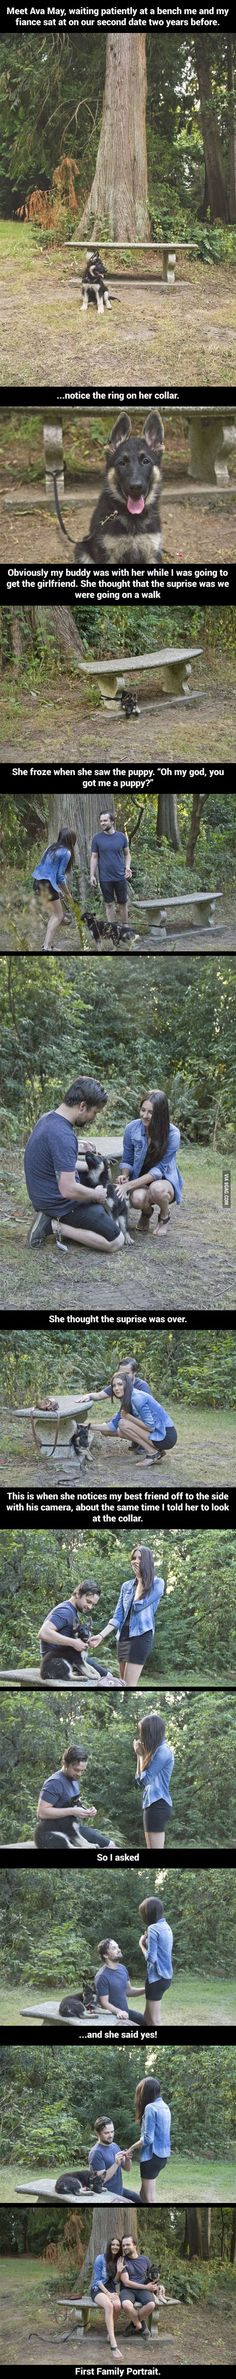 this is actually the cutest thing ive ever seen and i cannot think of a more perfect proposal ever.: